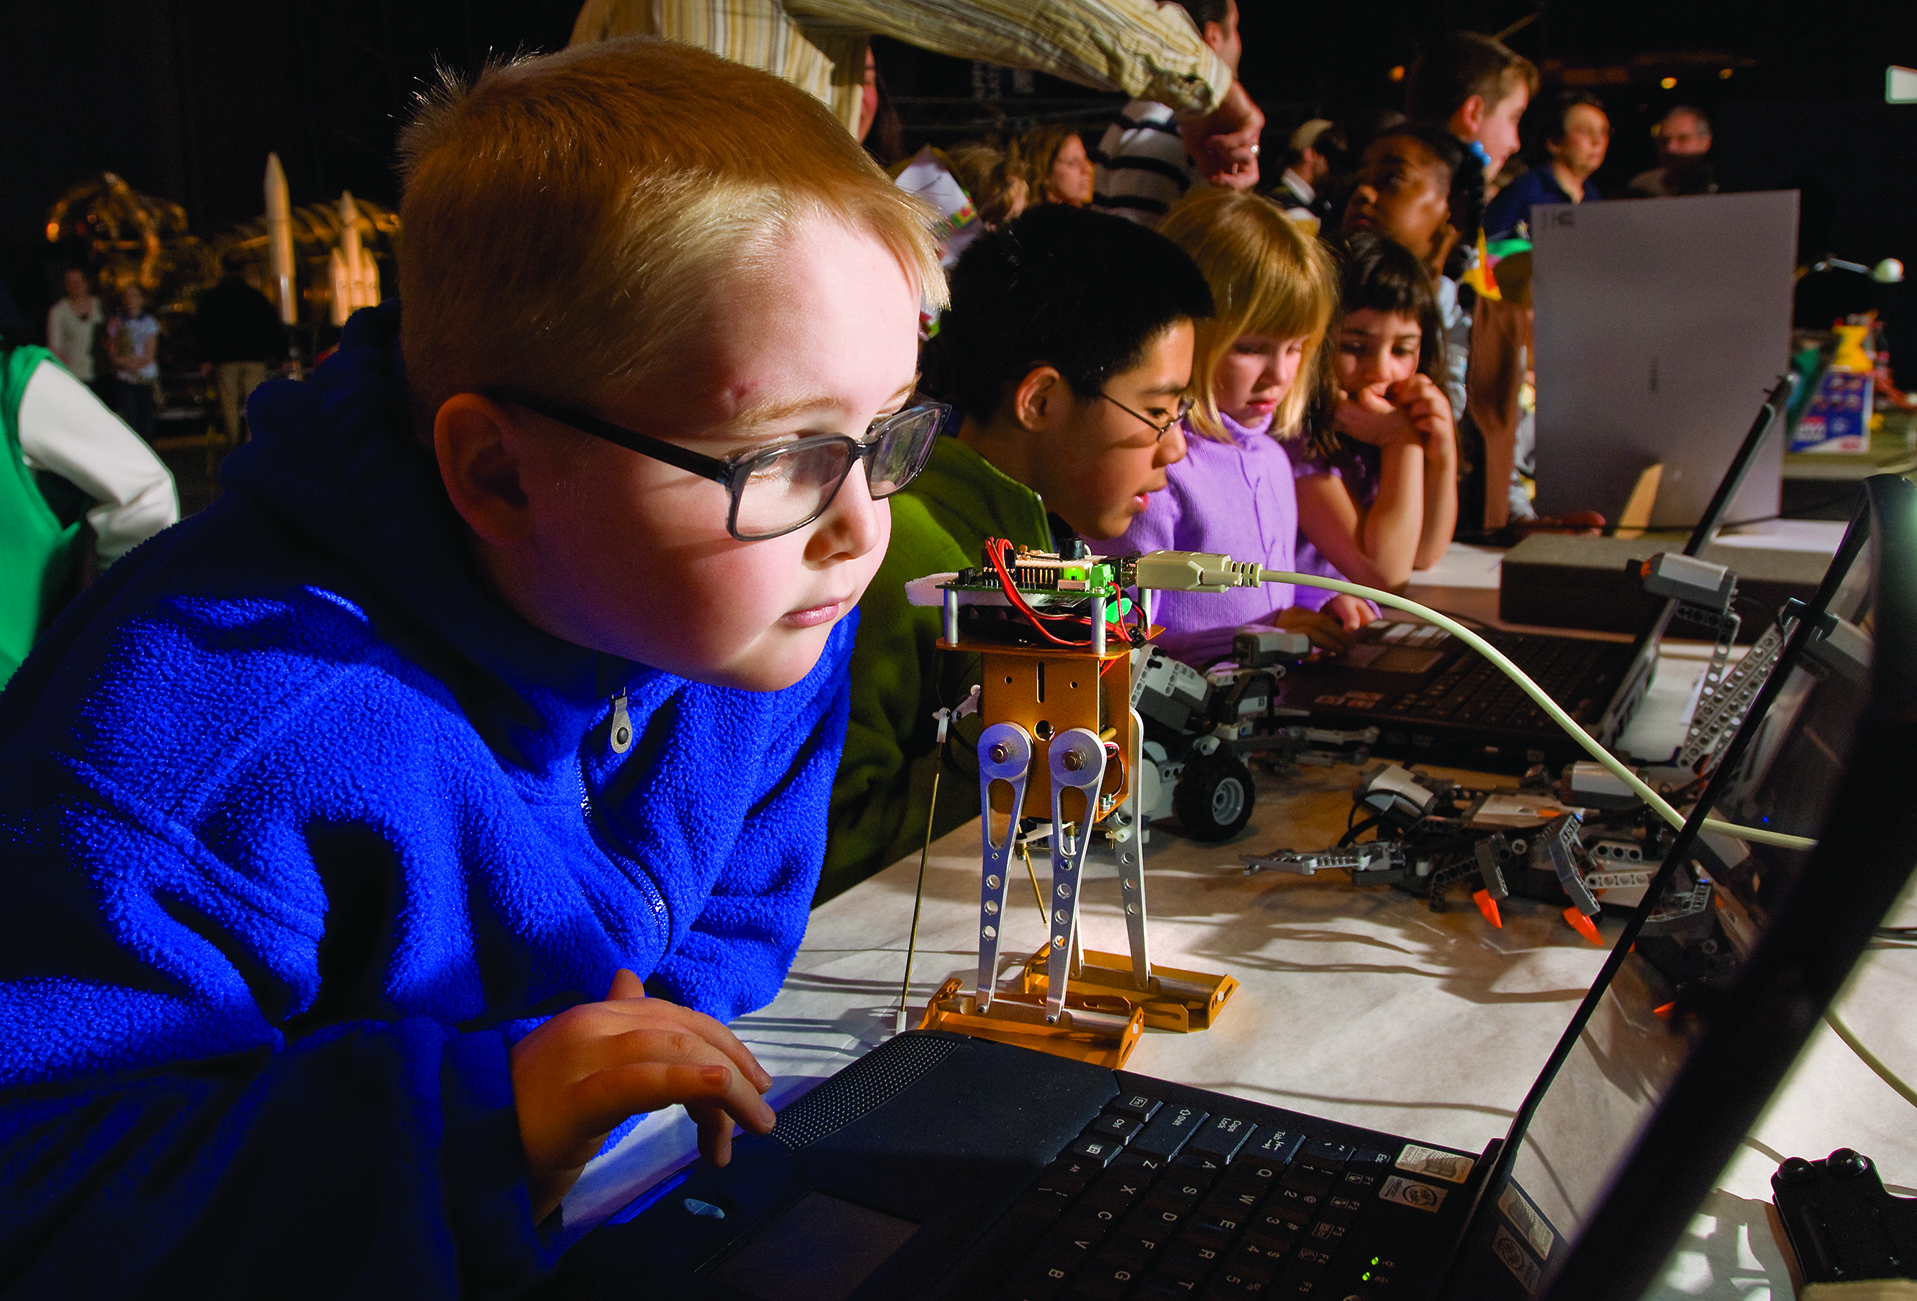 Young boy stares at computer screen among a large group of people